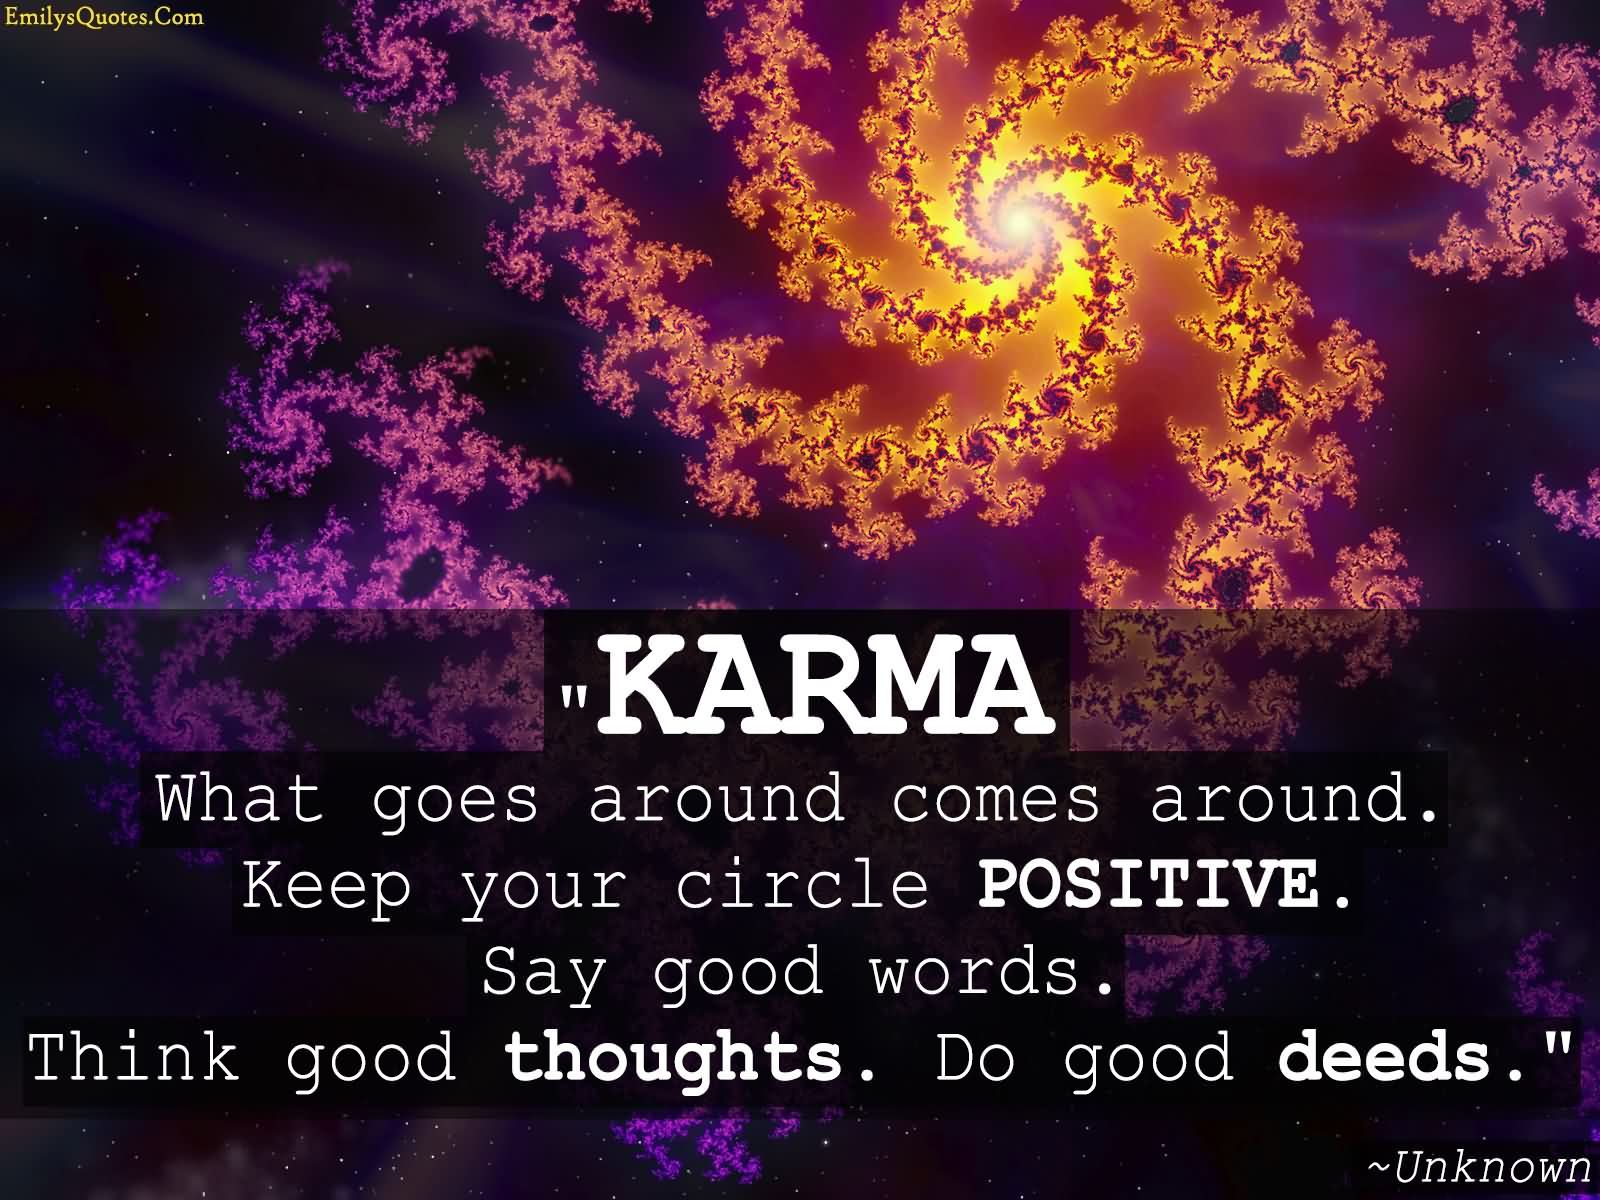 Keep Your Circle Positive: Say Good Words, Think